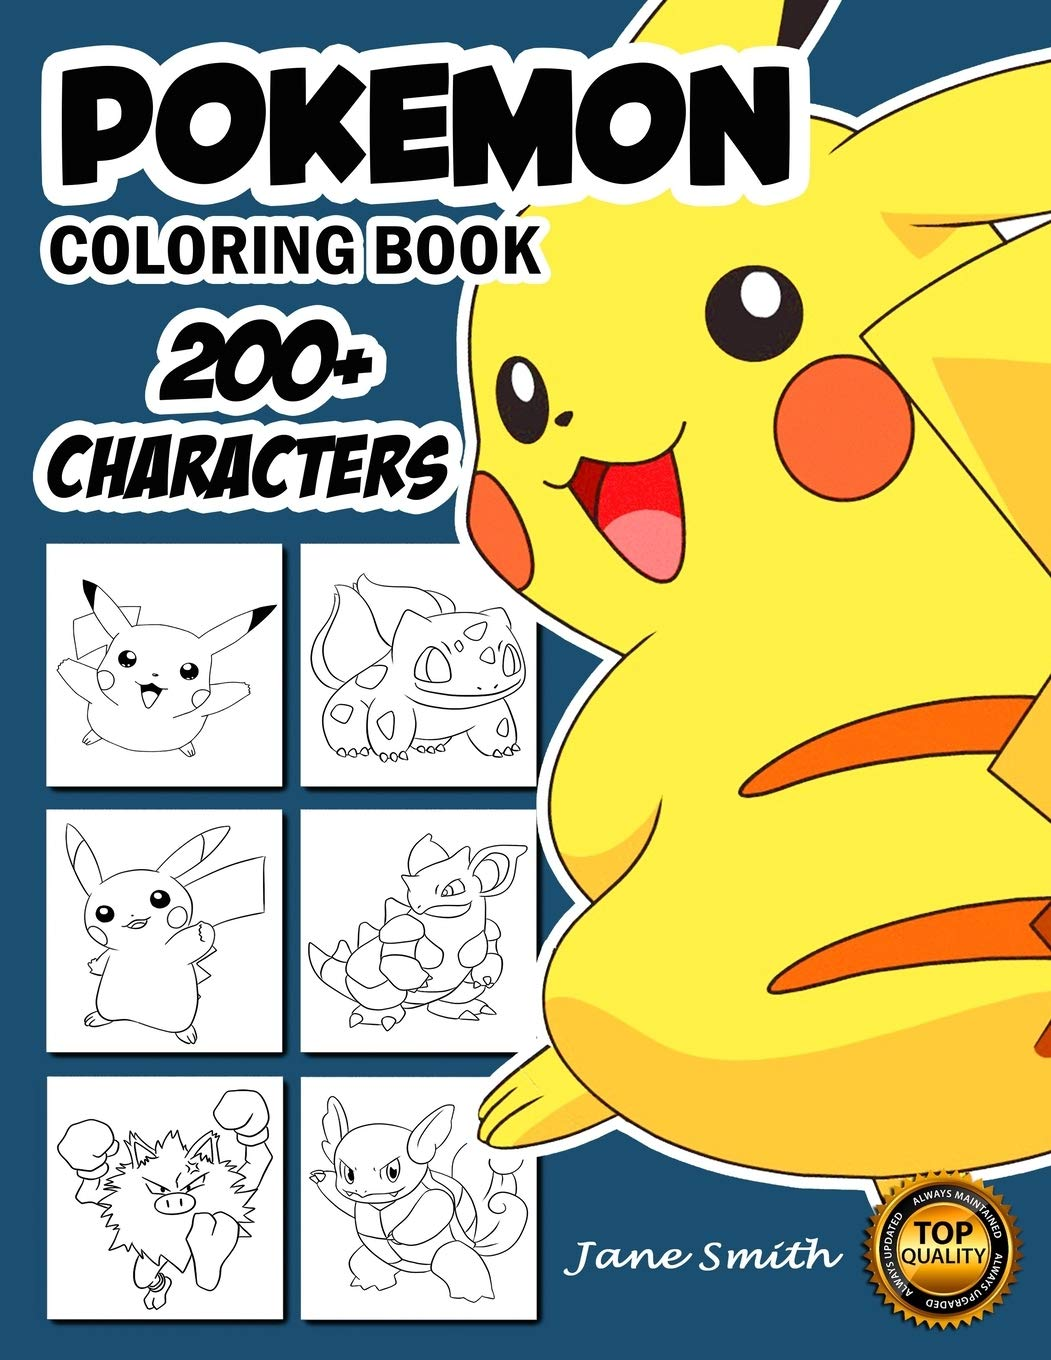 Amazon Com Pokemon Coloring Book Coloring Book For Kids 200 Pokemon Characters Pikachu Dragonite Charmander Eevee Squirtle Bulbasaur Coloring Pages For Teens Pokemon Characters Unofficial 9798649600187 Publication Jane Smith Books